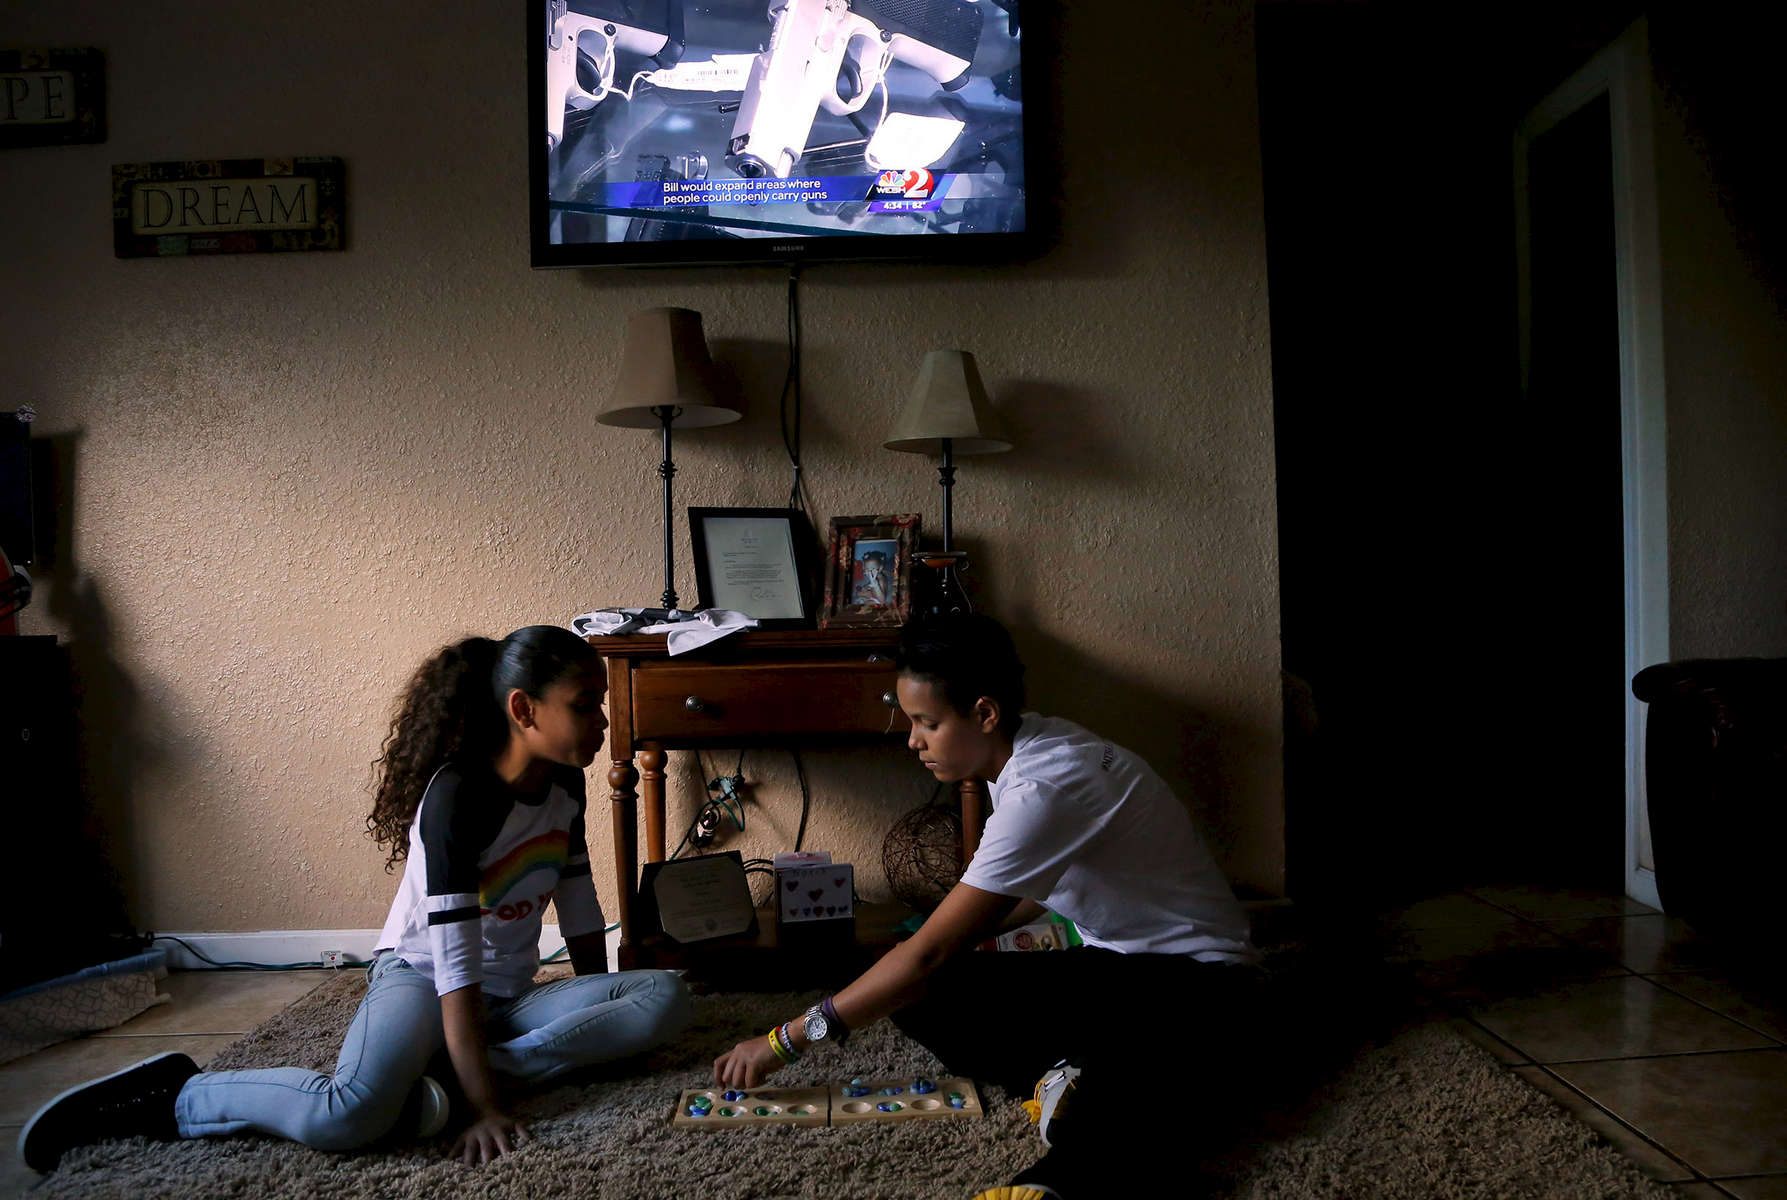 Pulse survivor Kaliesha Andino, 19, (right) and her sister Kinnie, 10, play a game at home six months after the shooting in Orlando, Fla., on Monday, December 12, 2016. Behind them a news report airs on a bill to loosen restrictions where people can openly carry firearms.